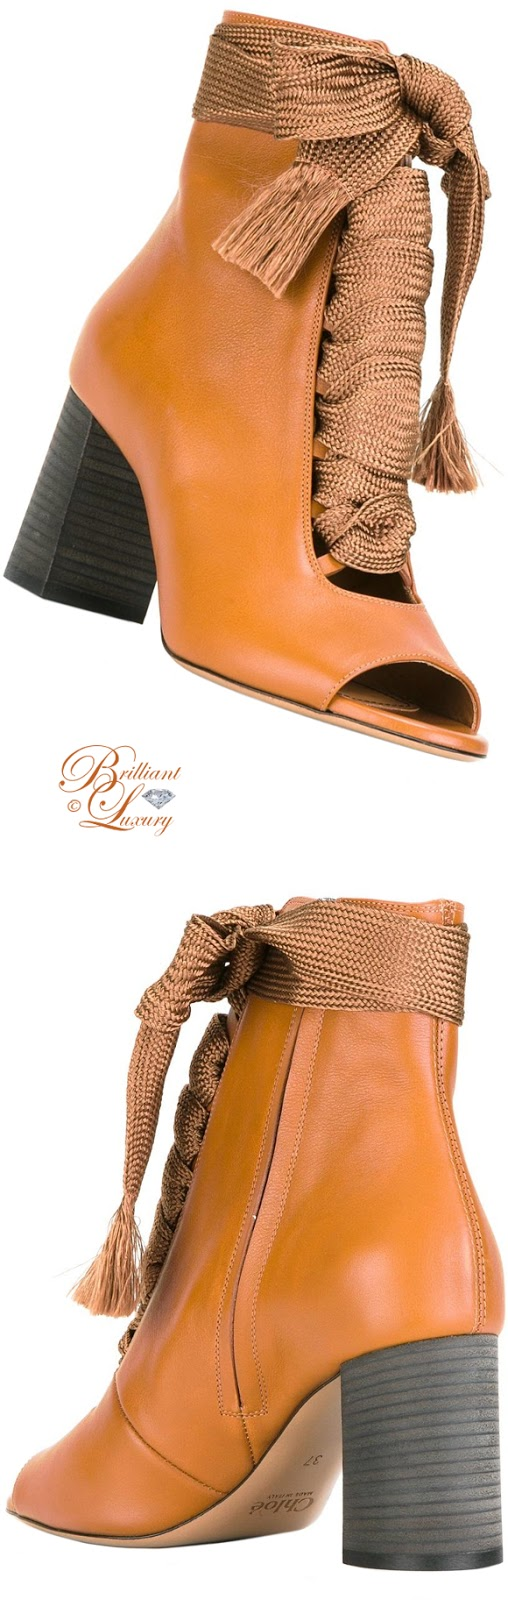 Brilliant Luxury ♦ Chloé Harper Booties